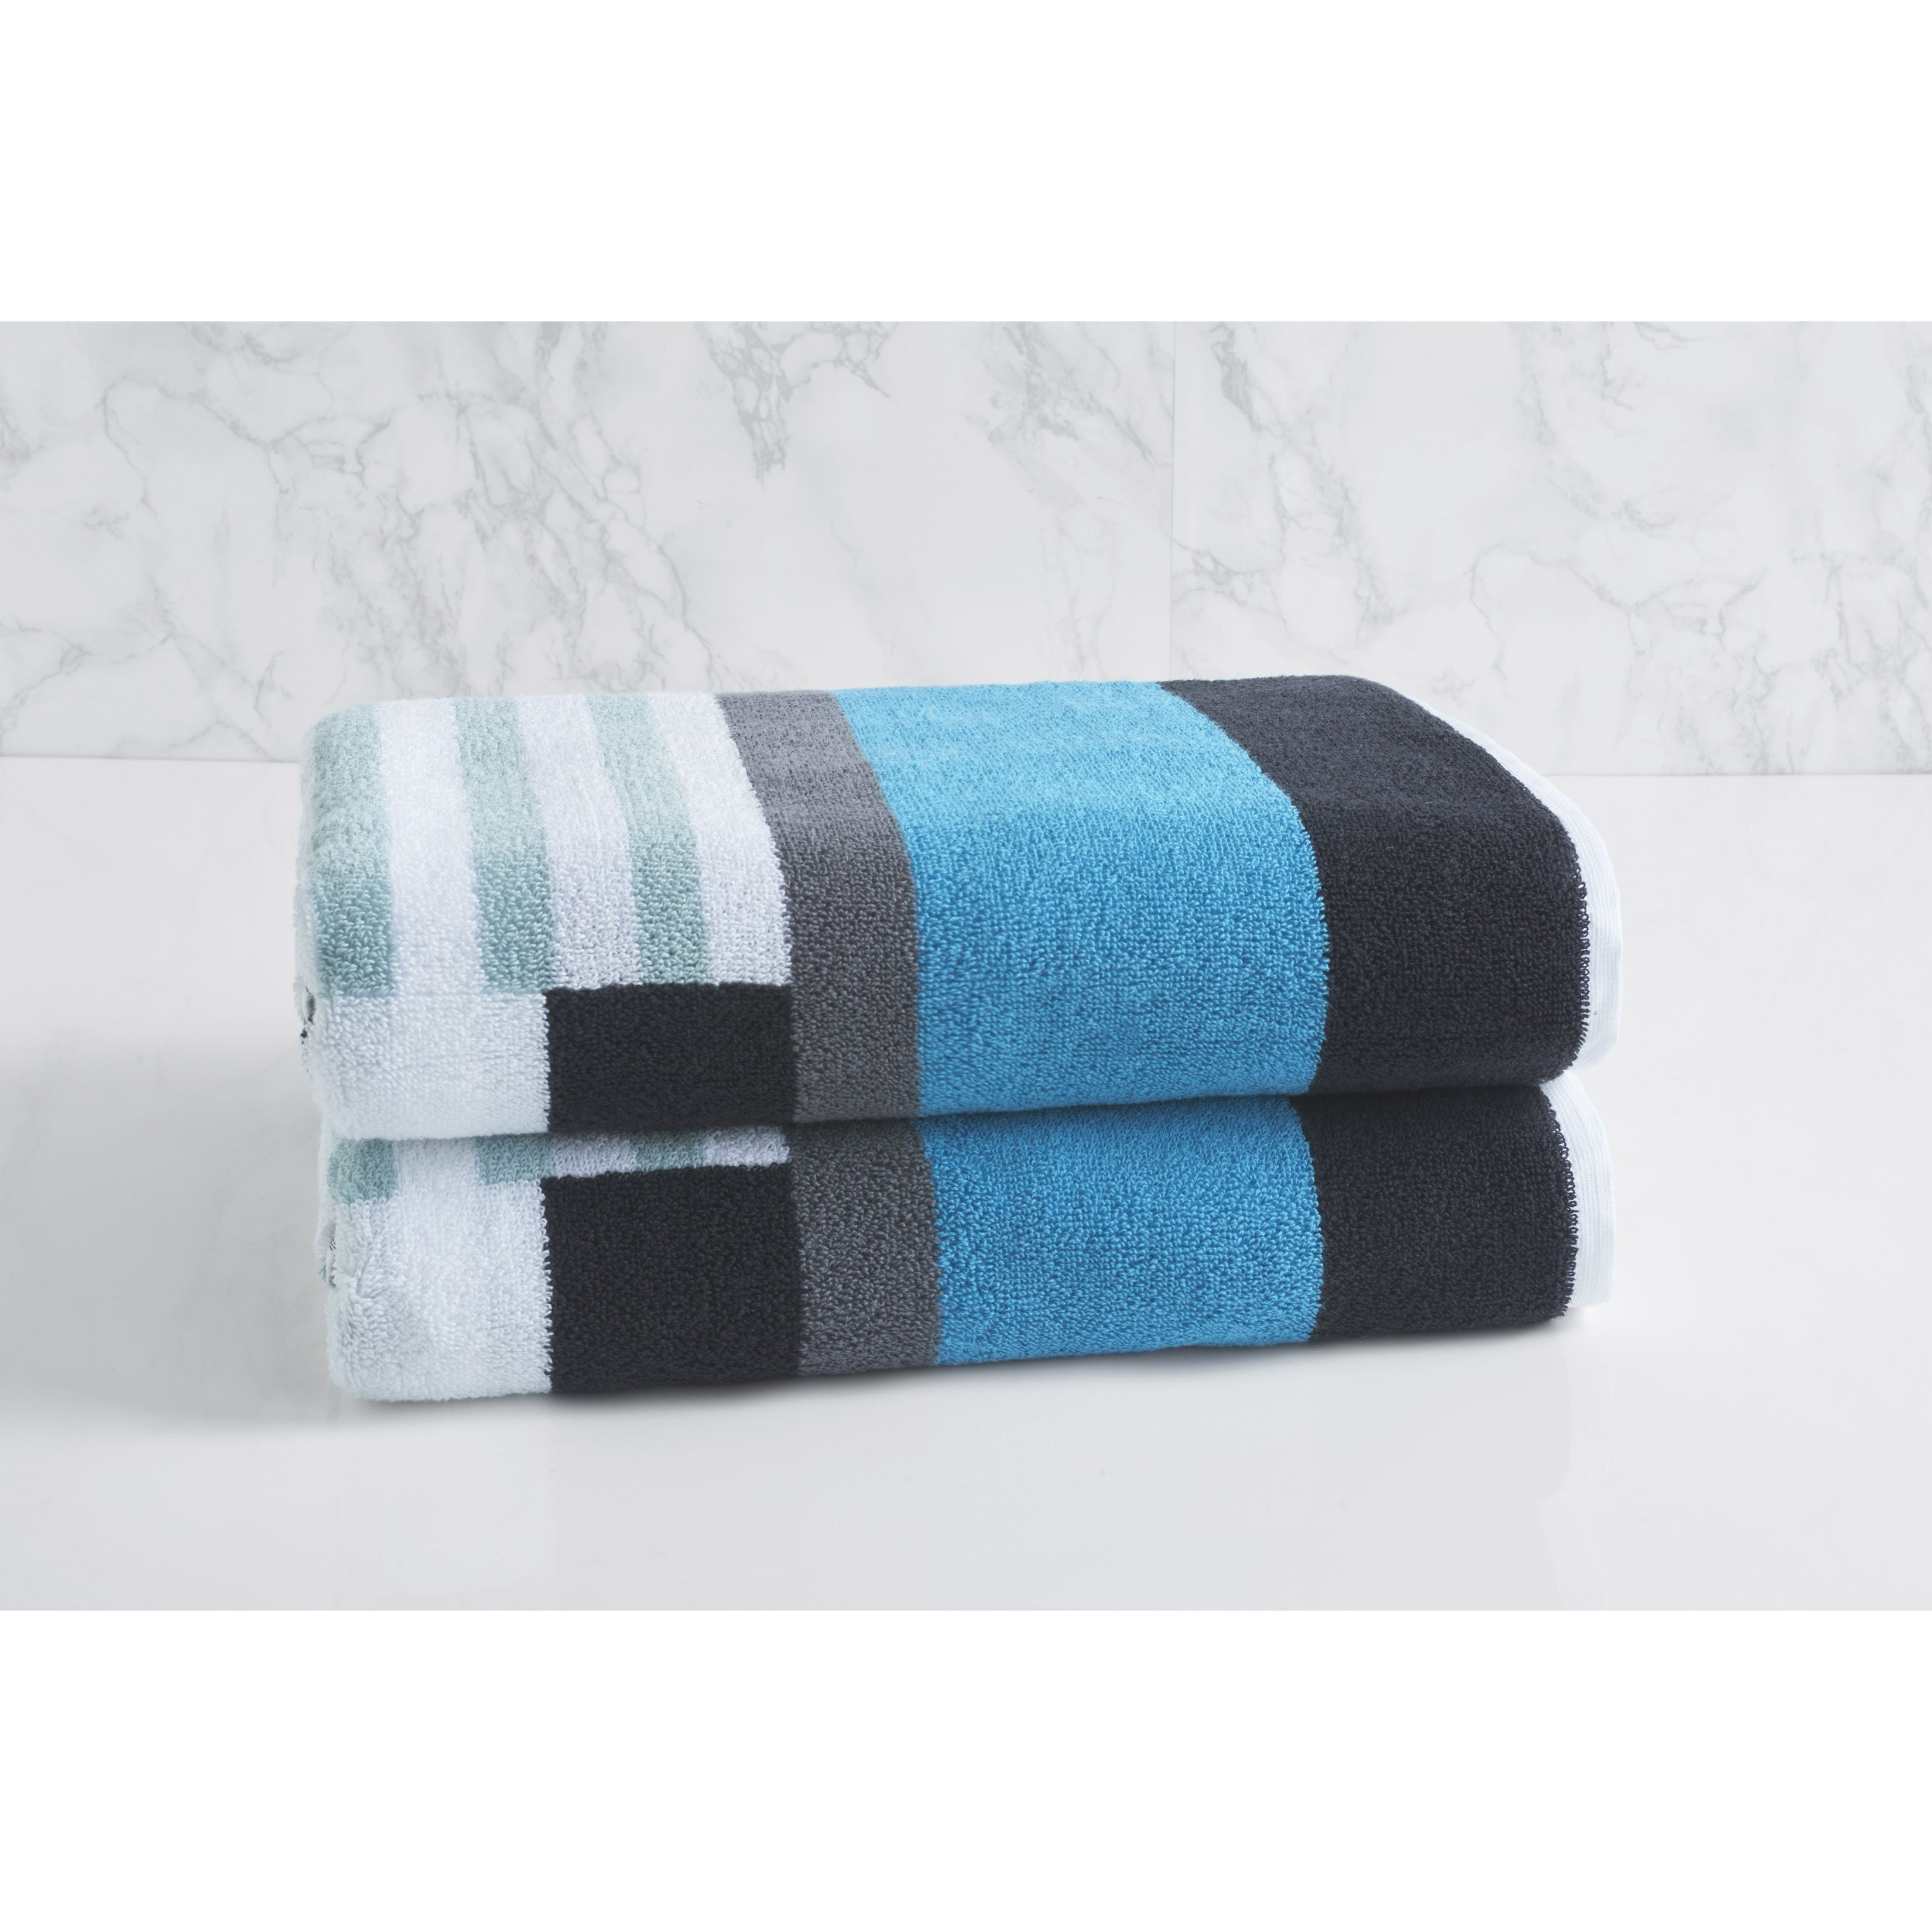 Decorative Bath Towel Sets Loftloftex Trestle Bath Towel Set Of 2 Sterling Blue Grey